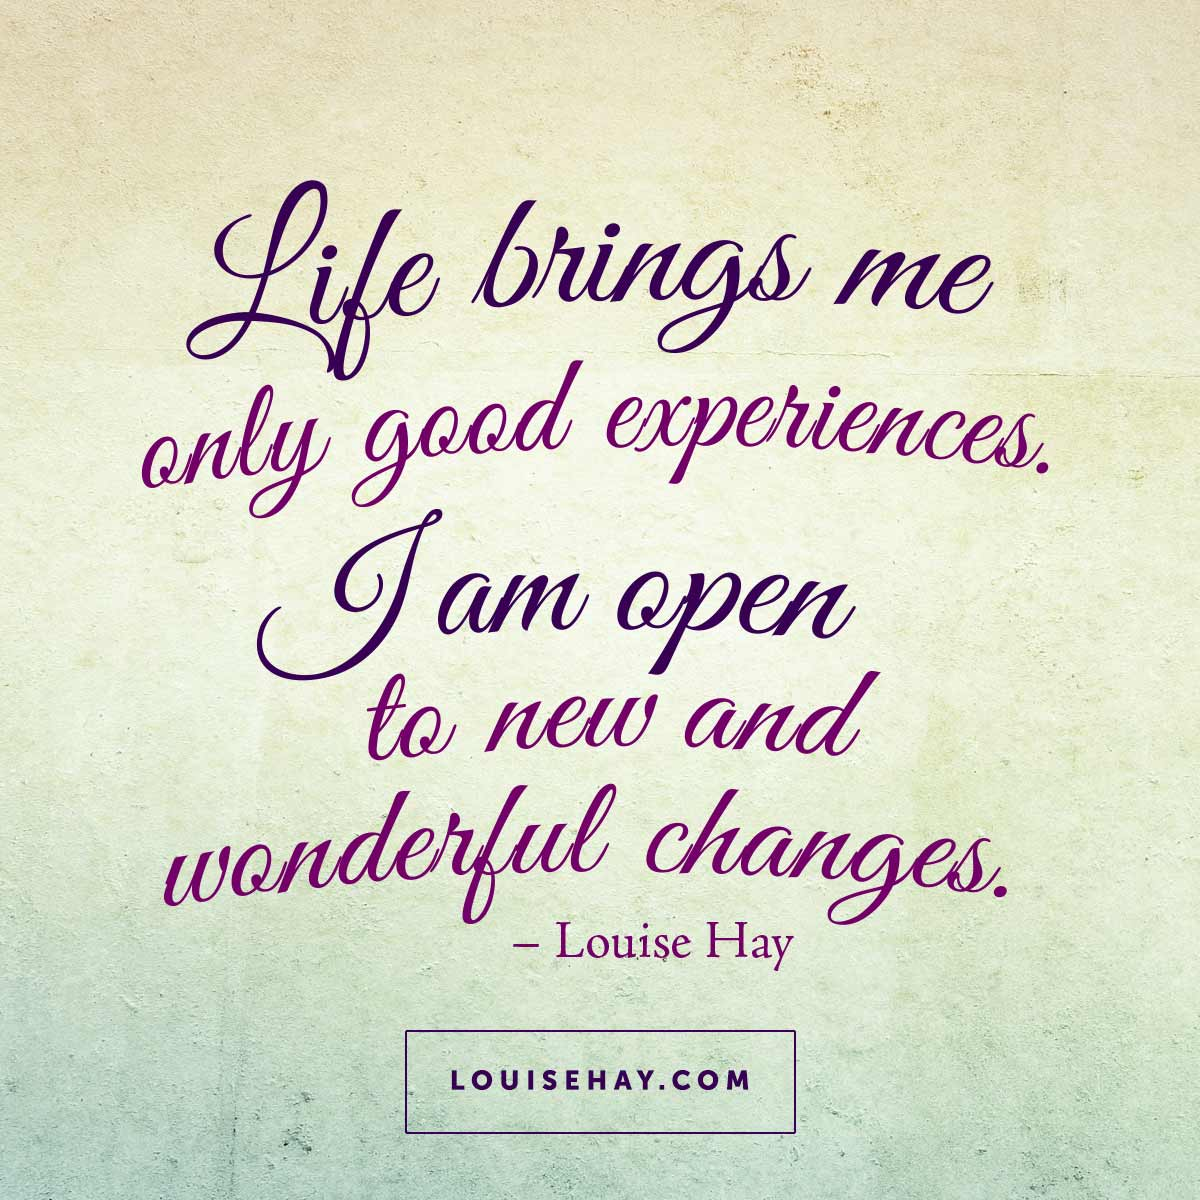 louise l hay how to love yourself